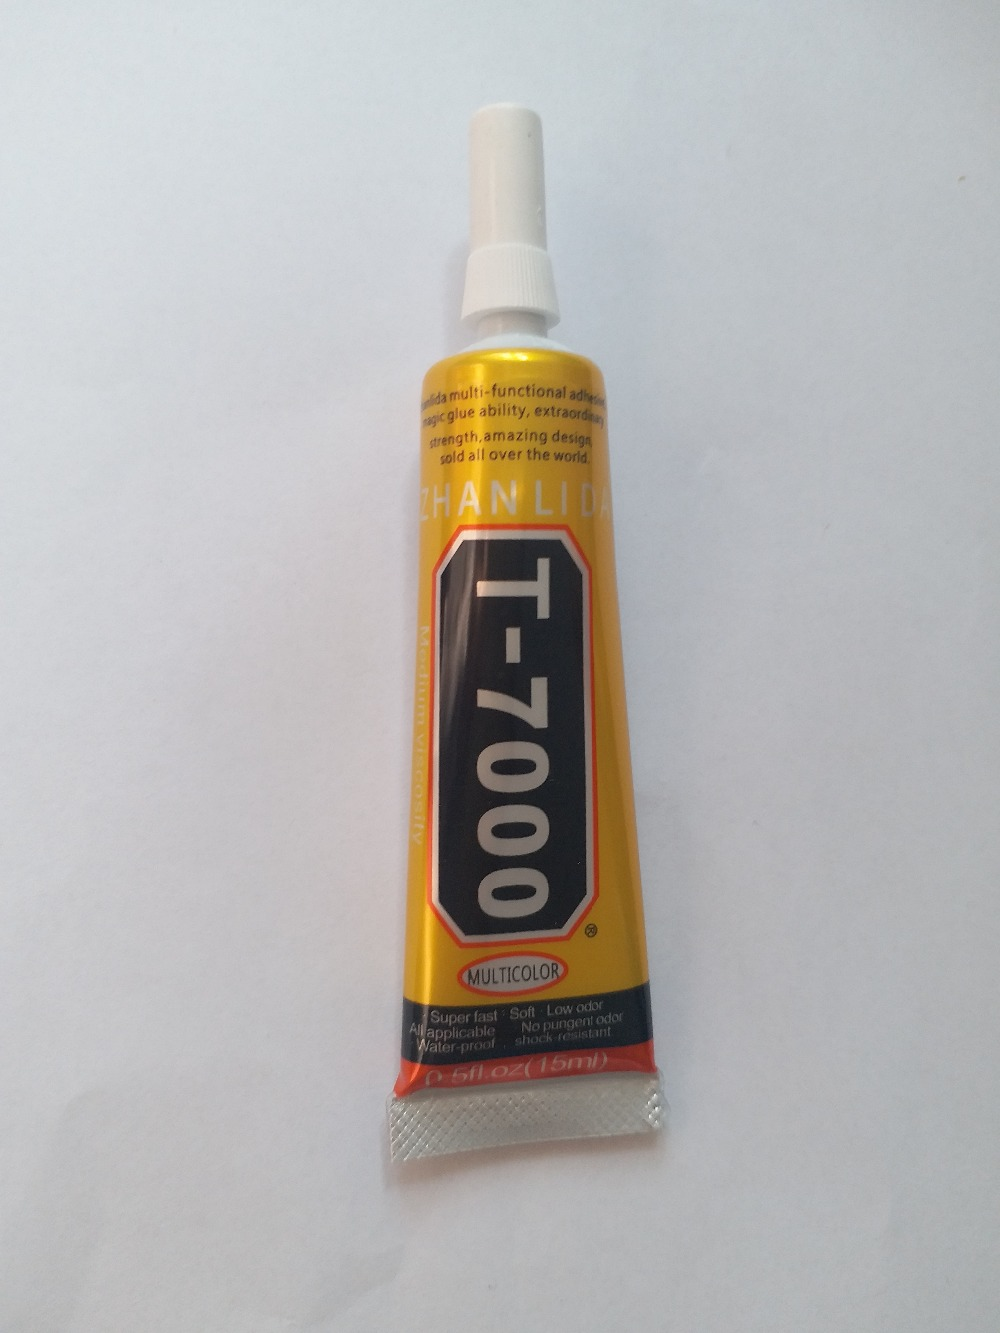 stronger-new-t-7000-glue-15ml-black-super-adhesive-cell-phone-touch-screen-repair-frame-sealant-diy-craft-jewelry-tools-t7000